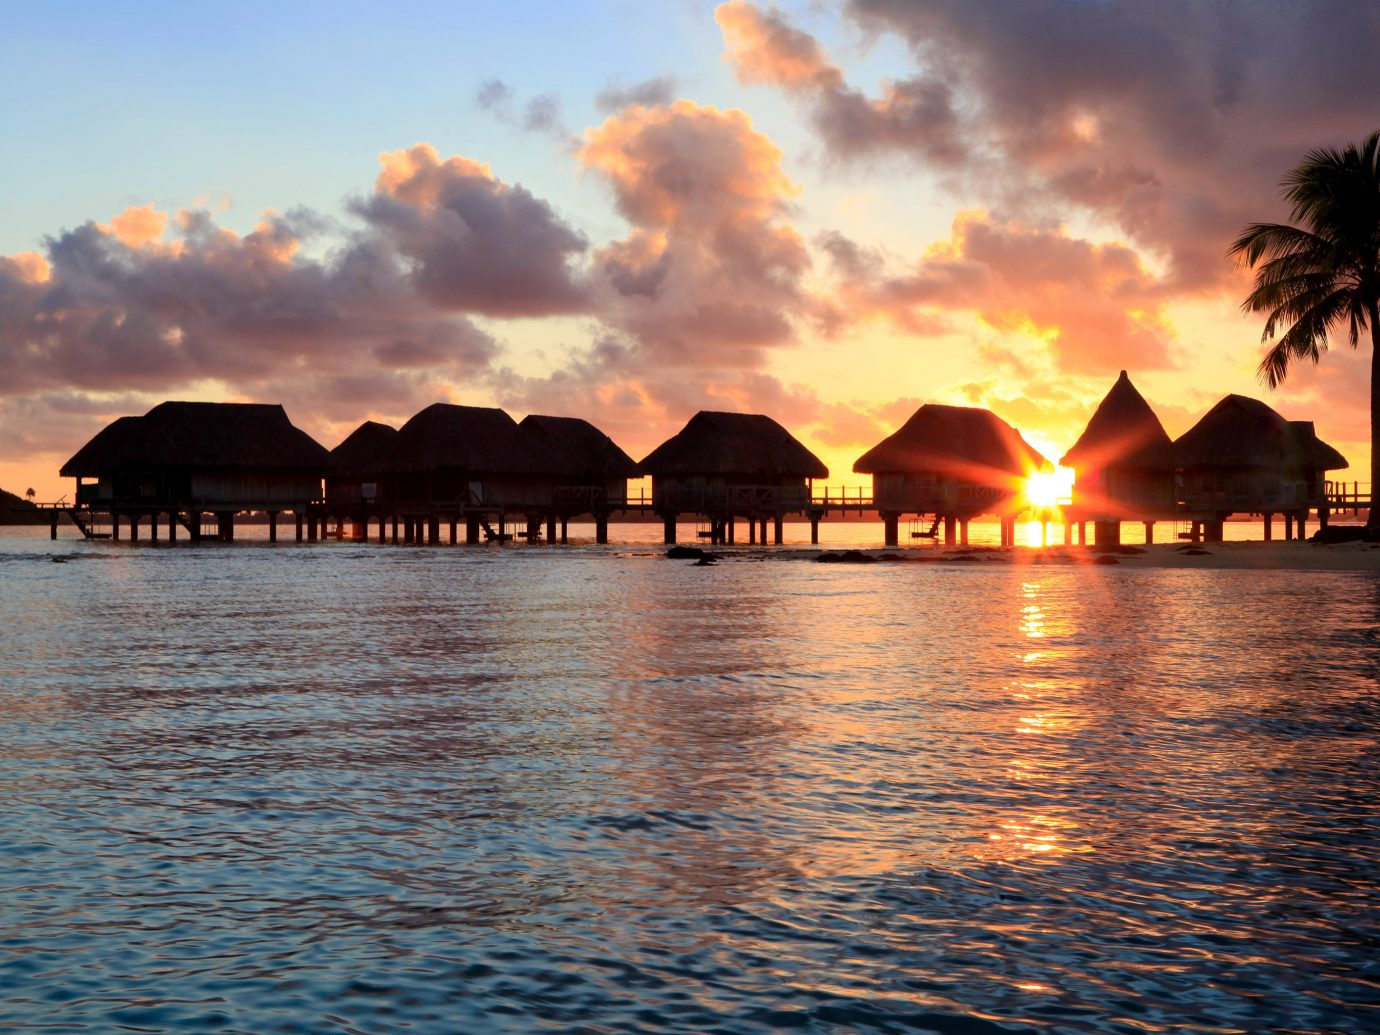 Architecture Buildings Hotels Overwater Bungalow Resort Scenic views Sunset water outdoor sky Sea horizon Ocean dusk Coast sunrise evening Beach bay dawn reflection sunlight cape clouds shore day